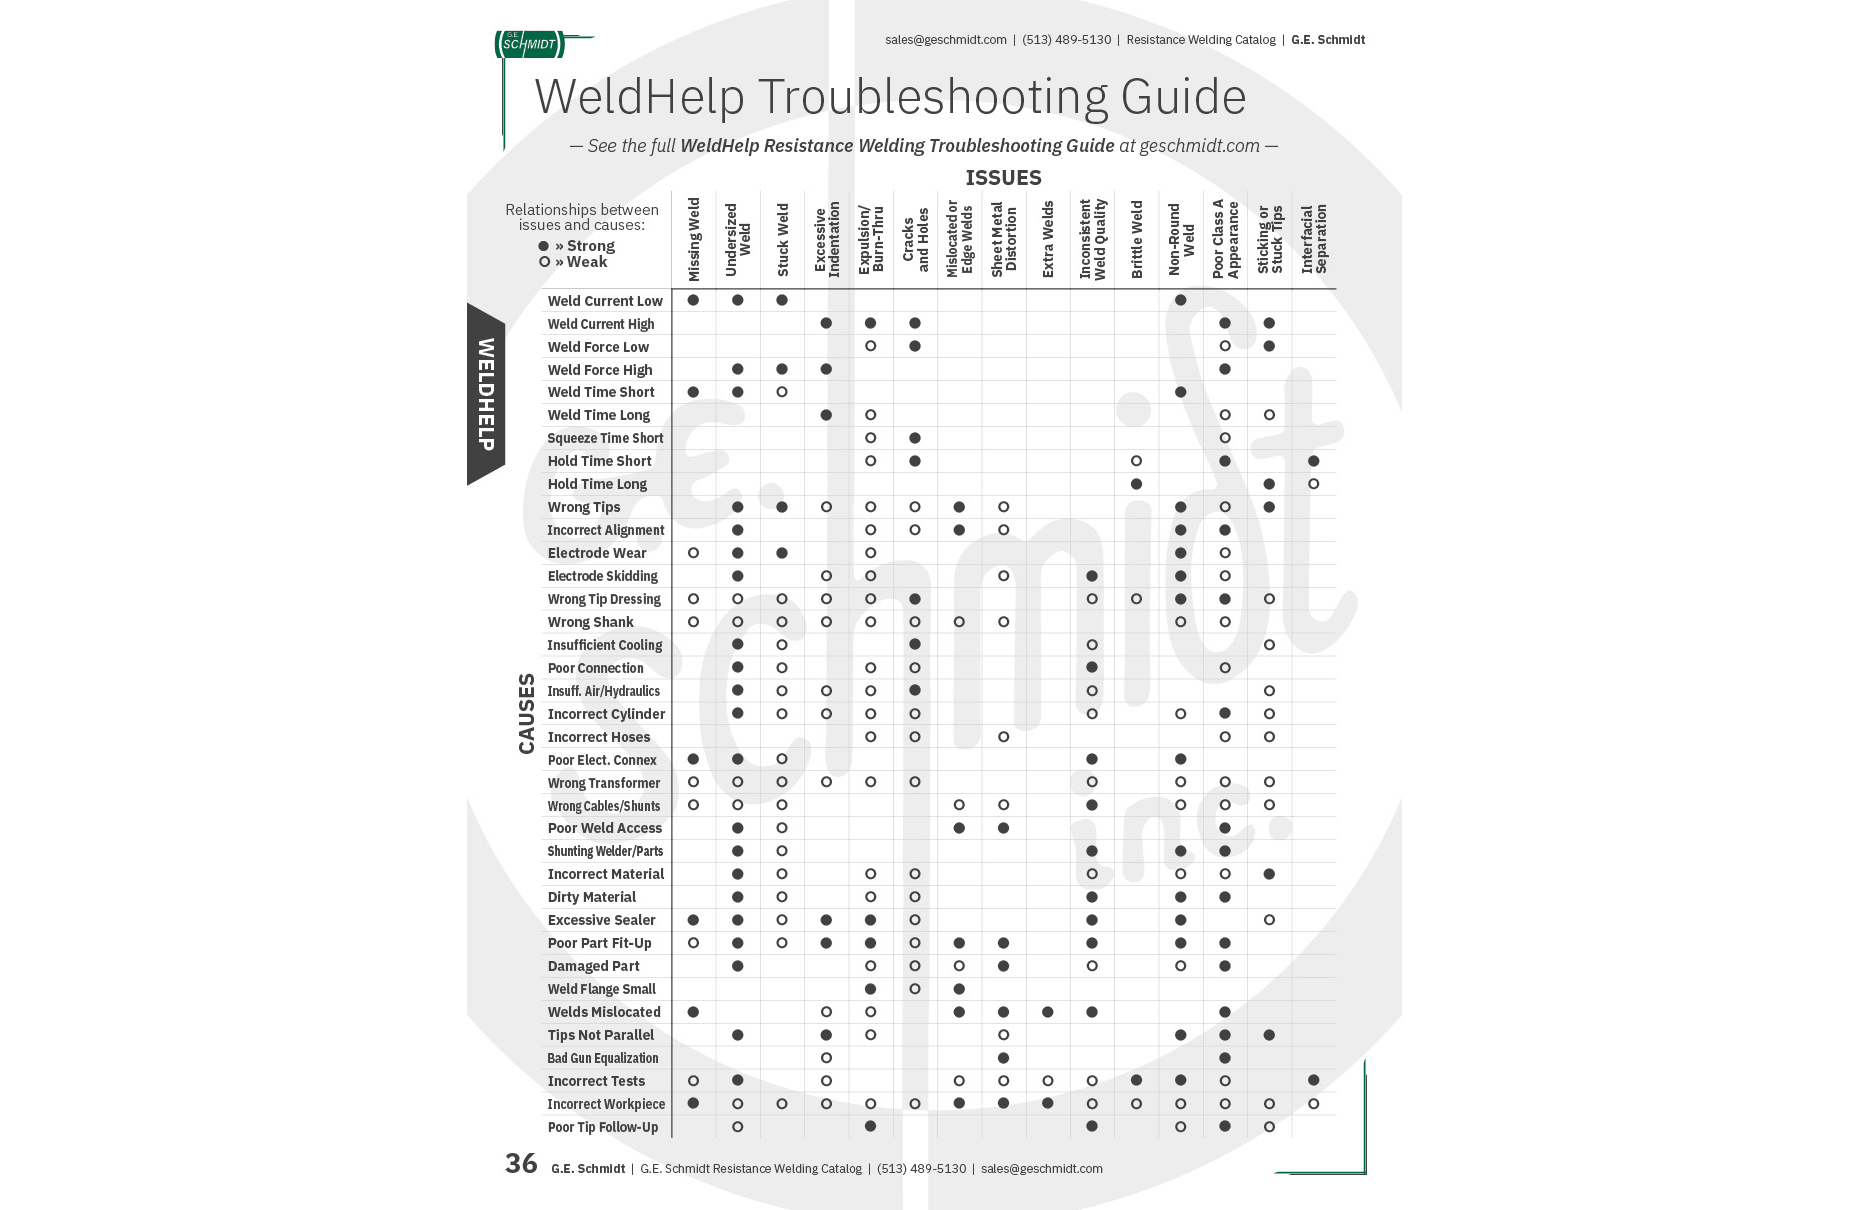 WeldHelp Resistance Welding Troubleshooting Guide Chart